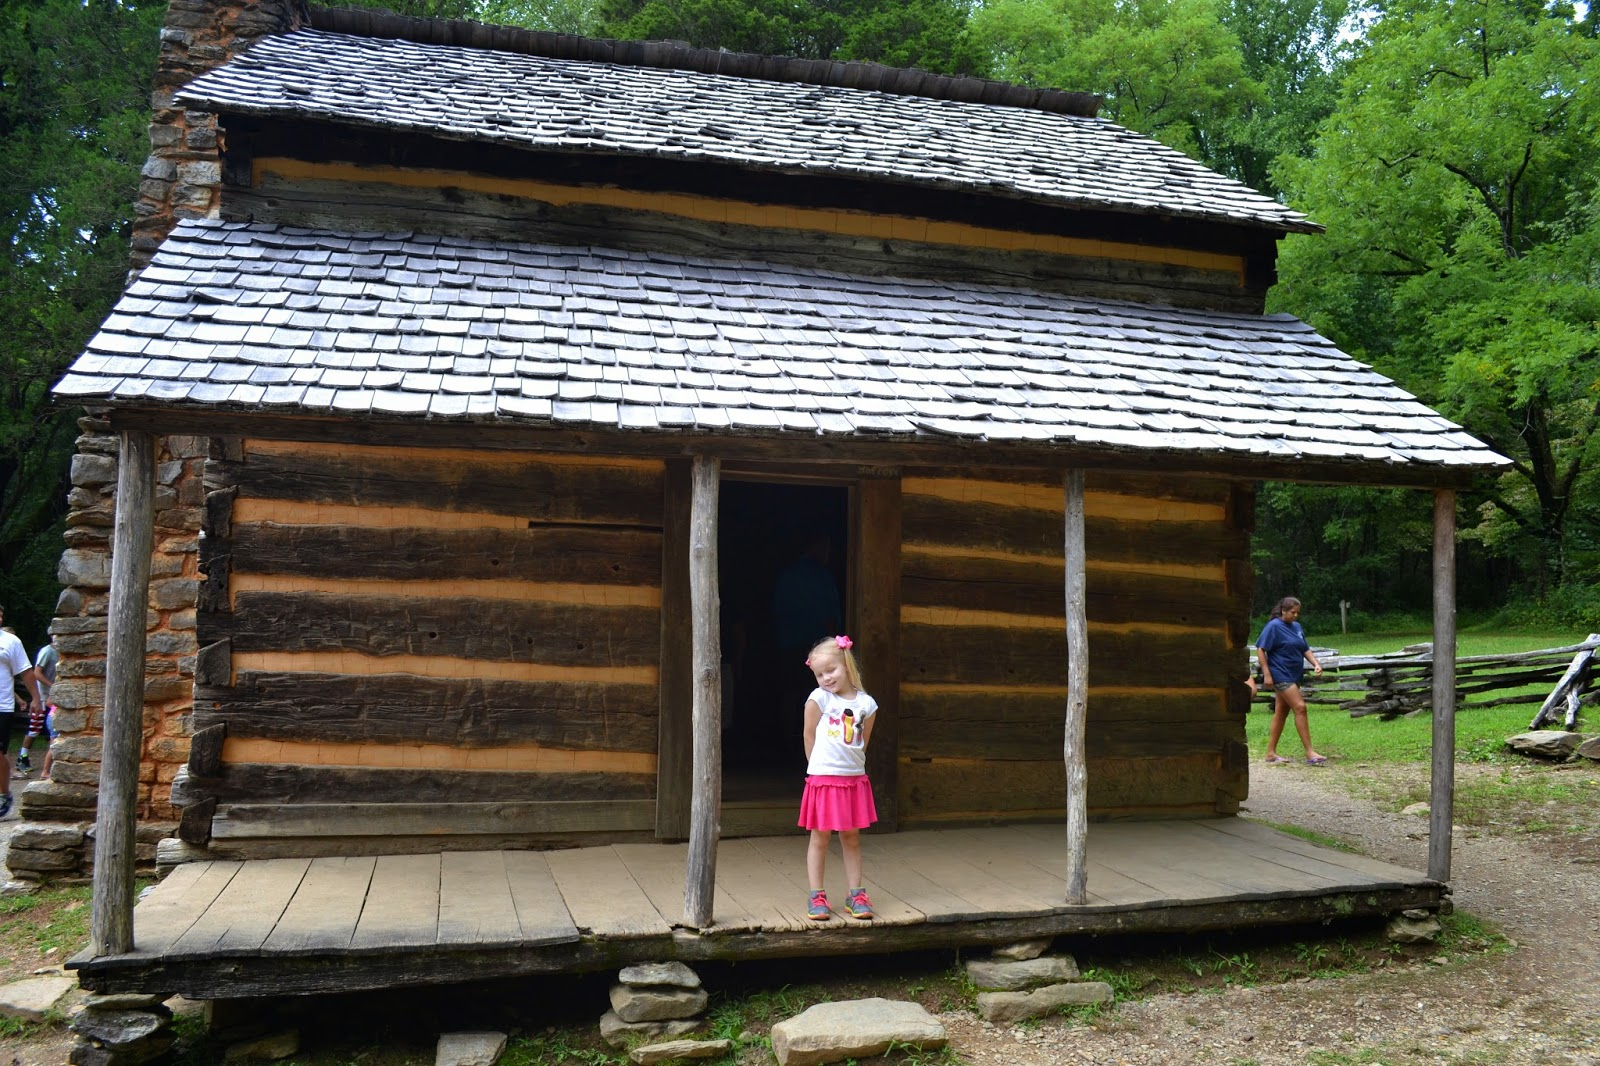 John Oliver House in Cades Cove TN